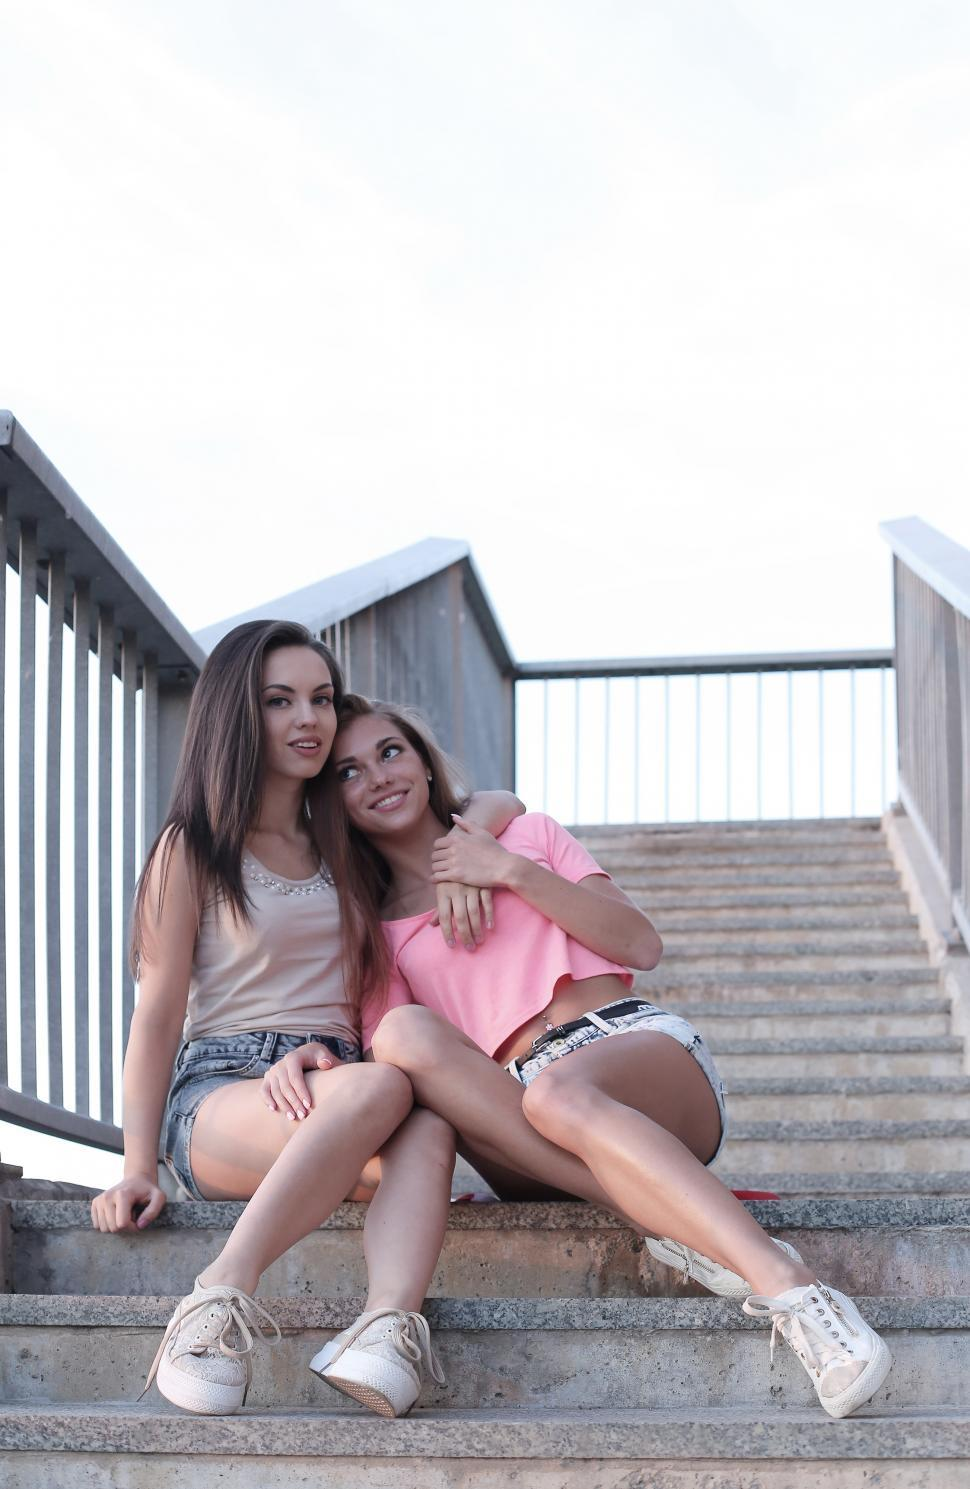 Download Free Stock Photo of Two Girls Sitting on Steps, Embracing